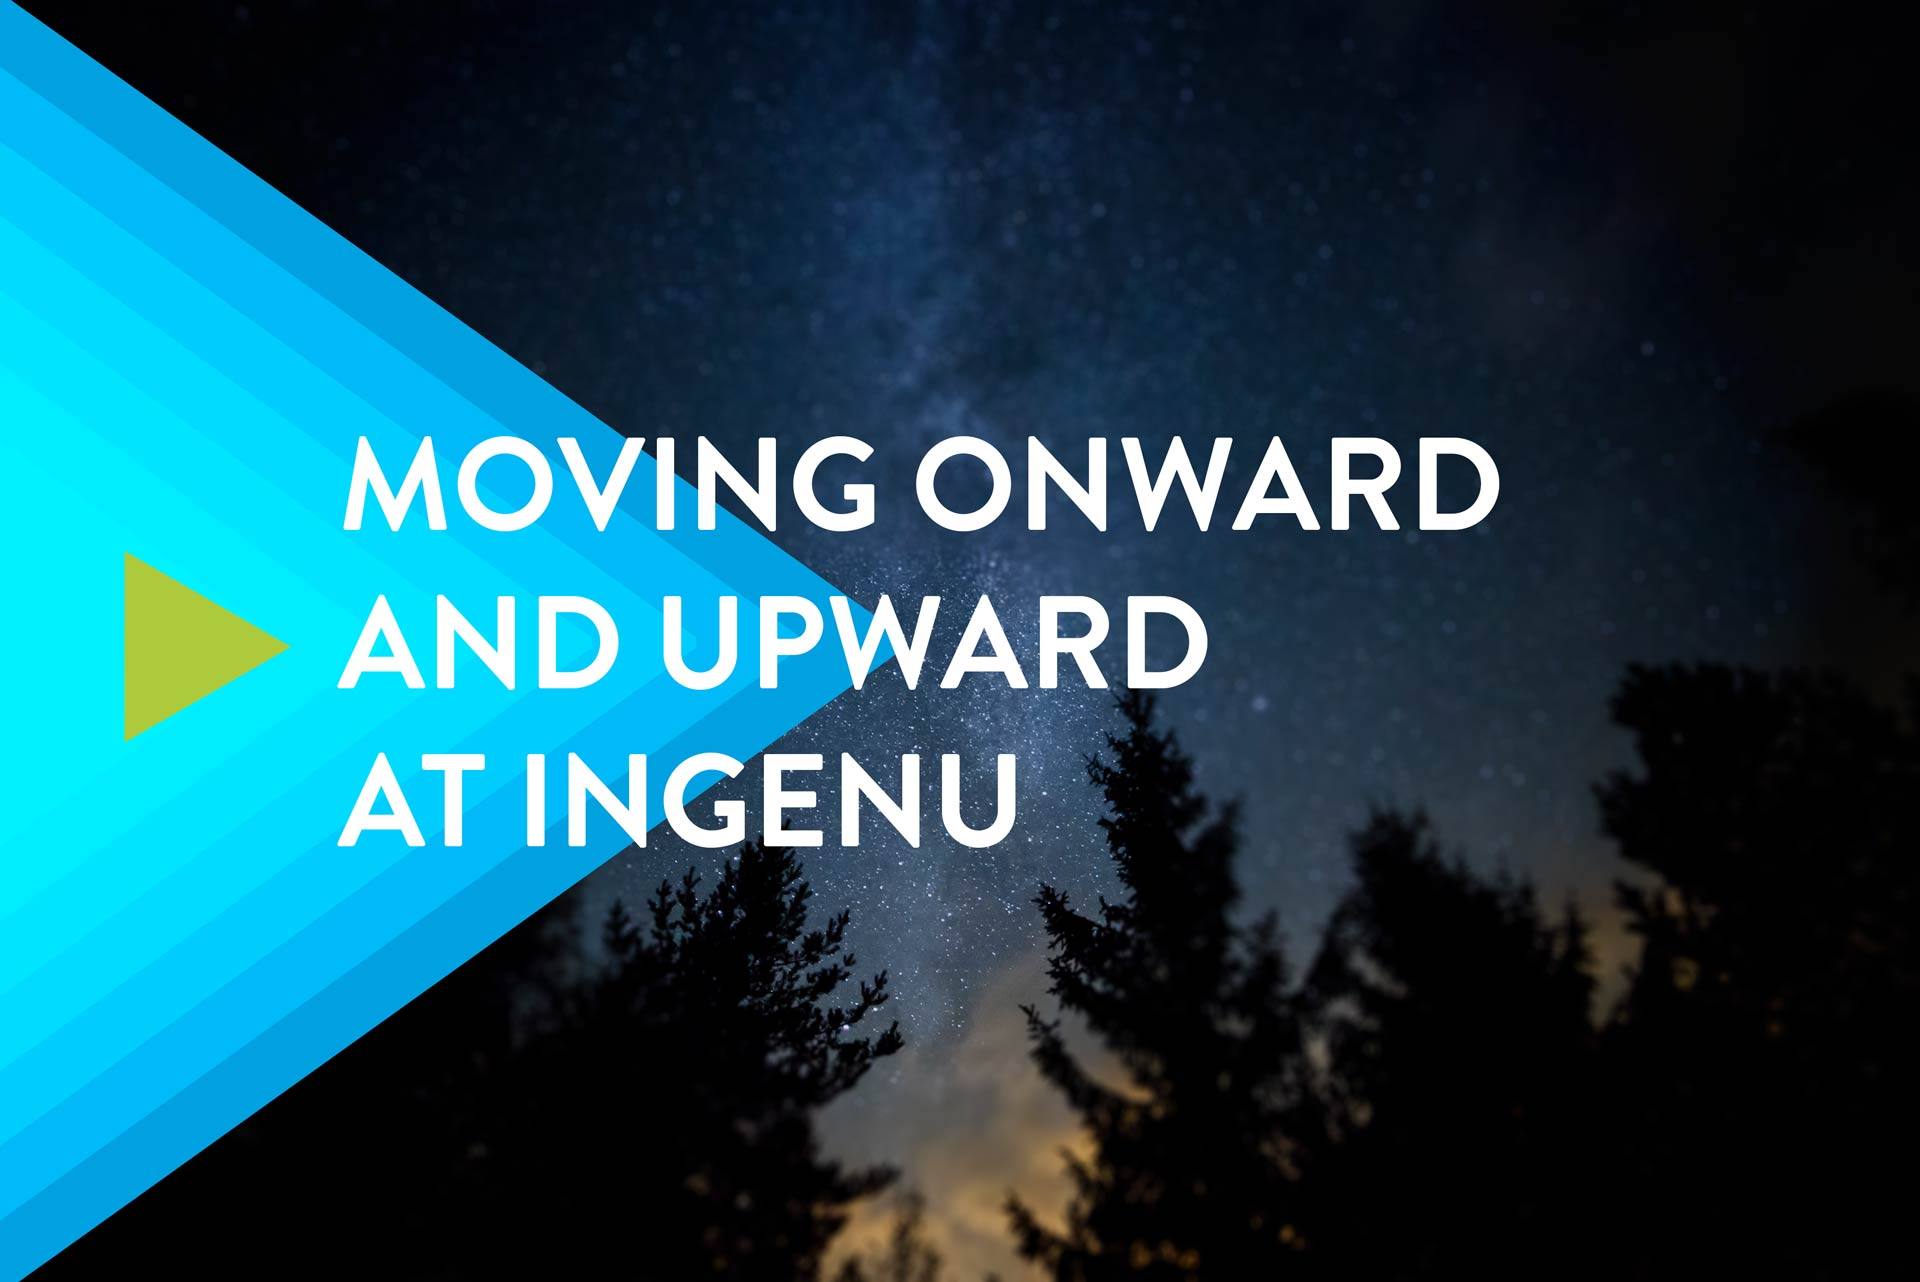 ingenu new office